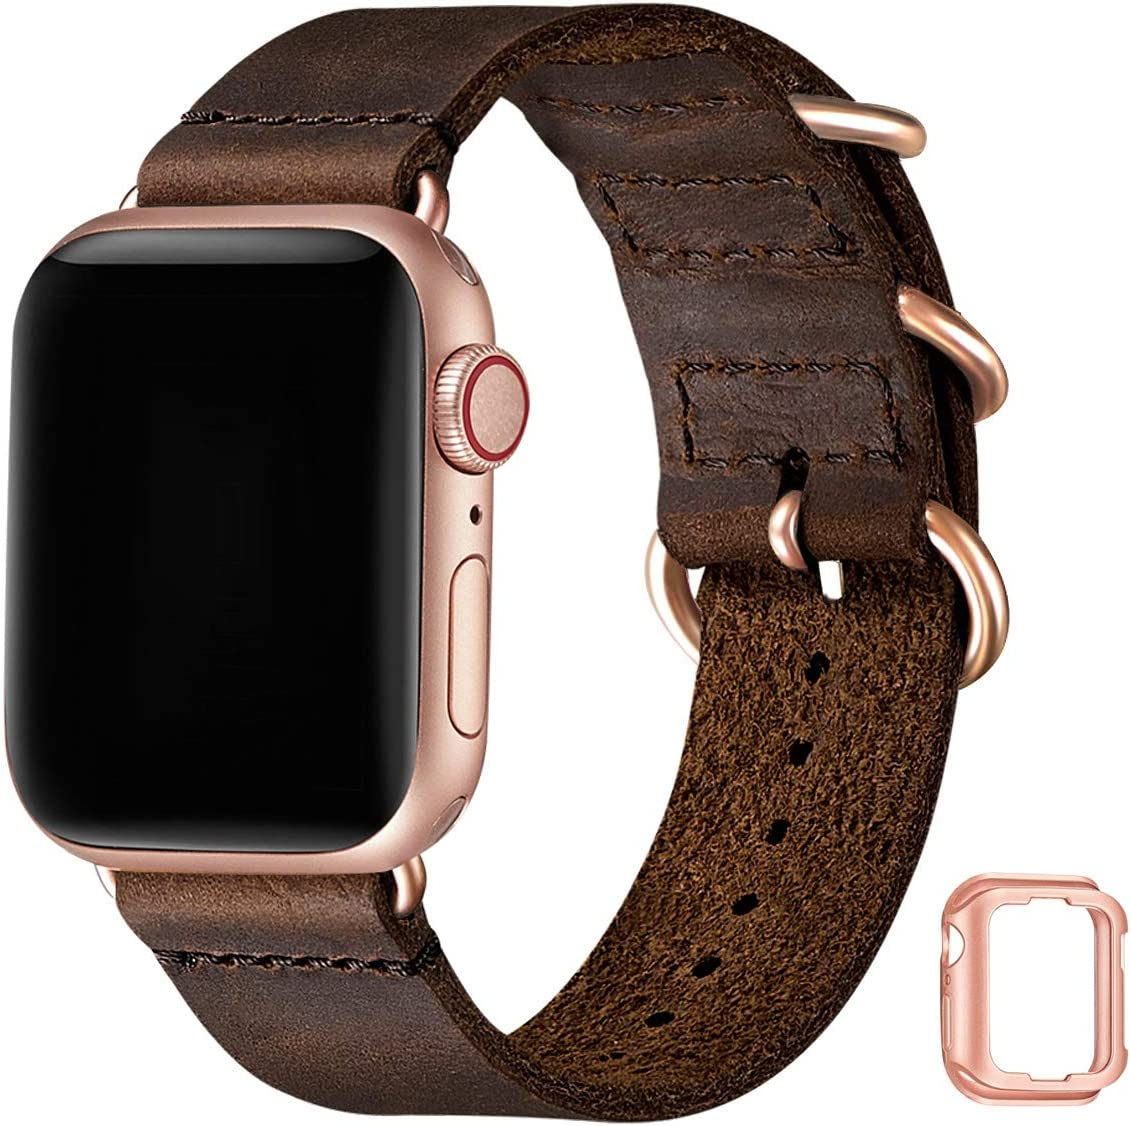 Vintage Leather Bands Compatible with Apple Watch Band 38mm 40mm 42mm 44mm,Genuine Leather Retro Strap Compatible for Men Women iWatch SE Series 6/5/4/3/2/1 (Coffee+Rose Gold Connector, 42mm 44mm)